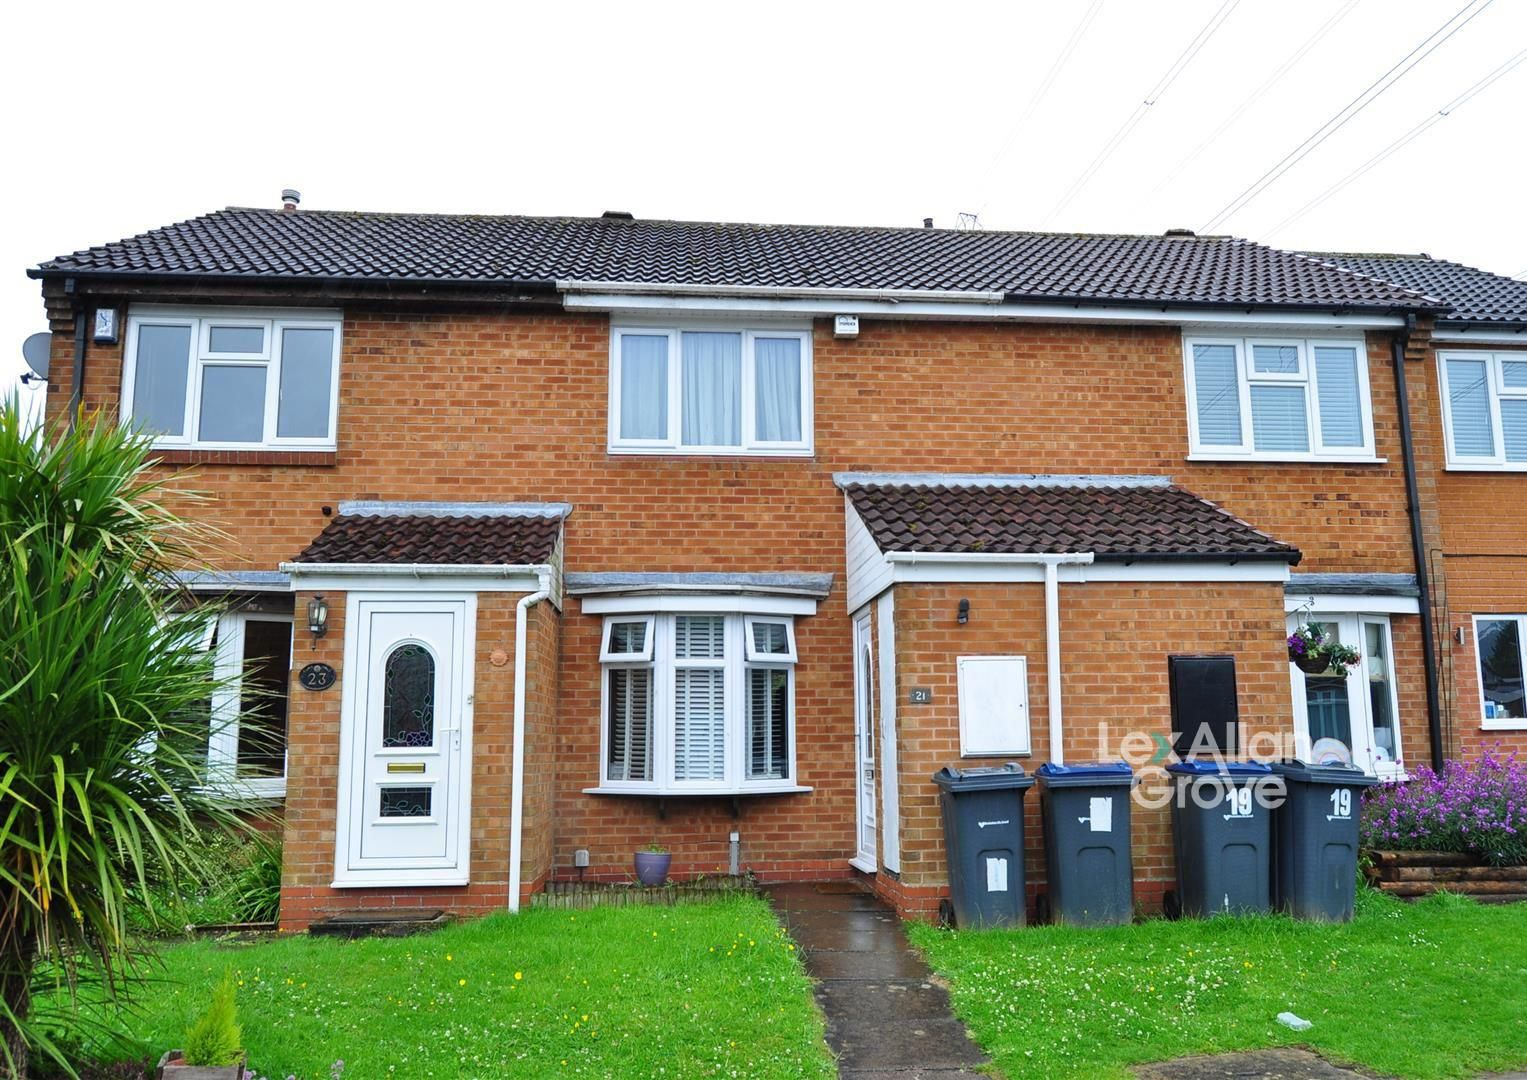 2 bed terraced for sale, B32